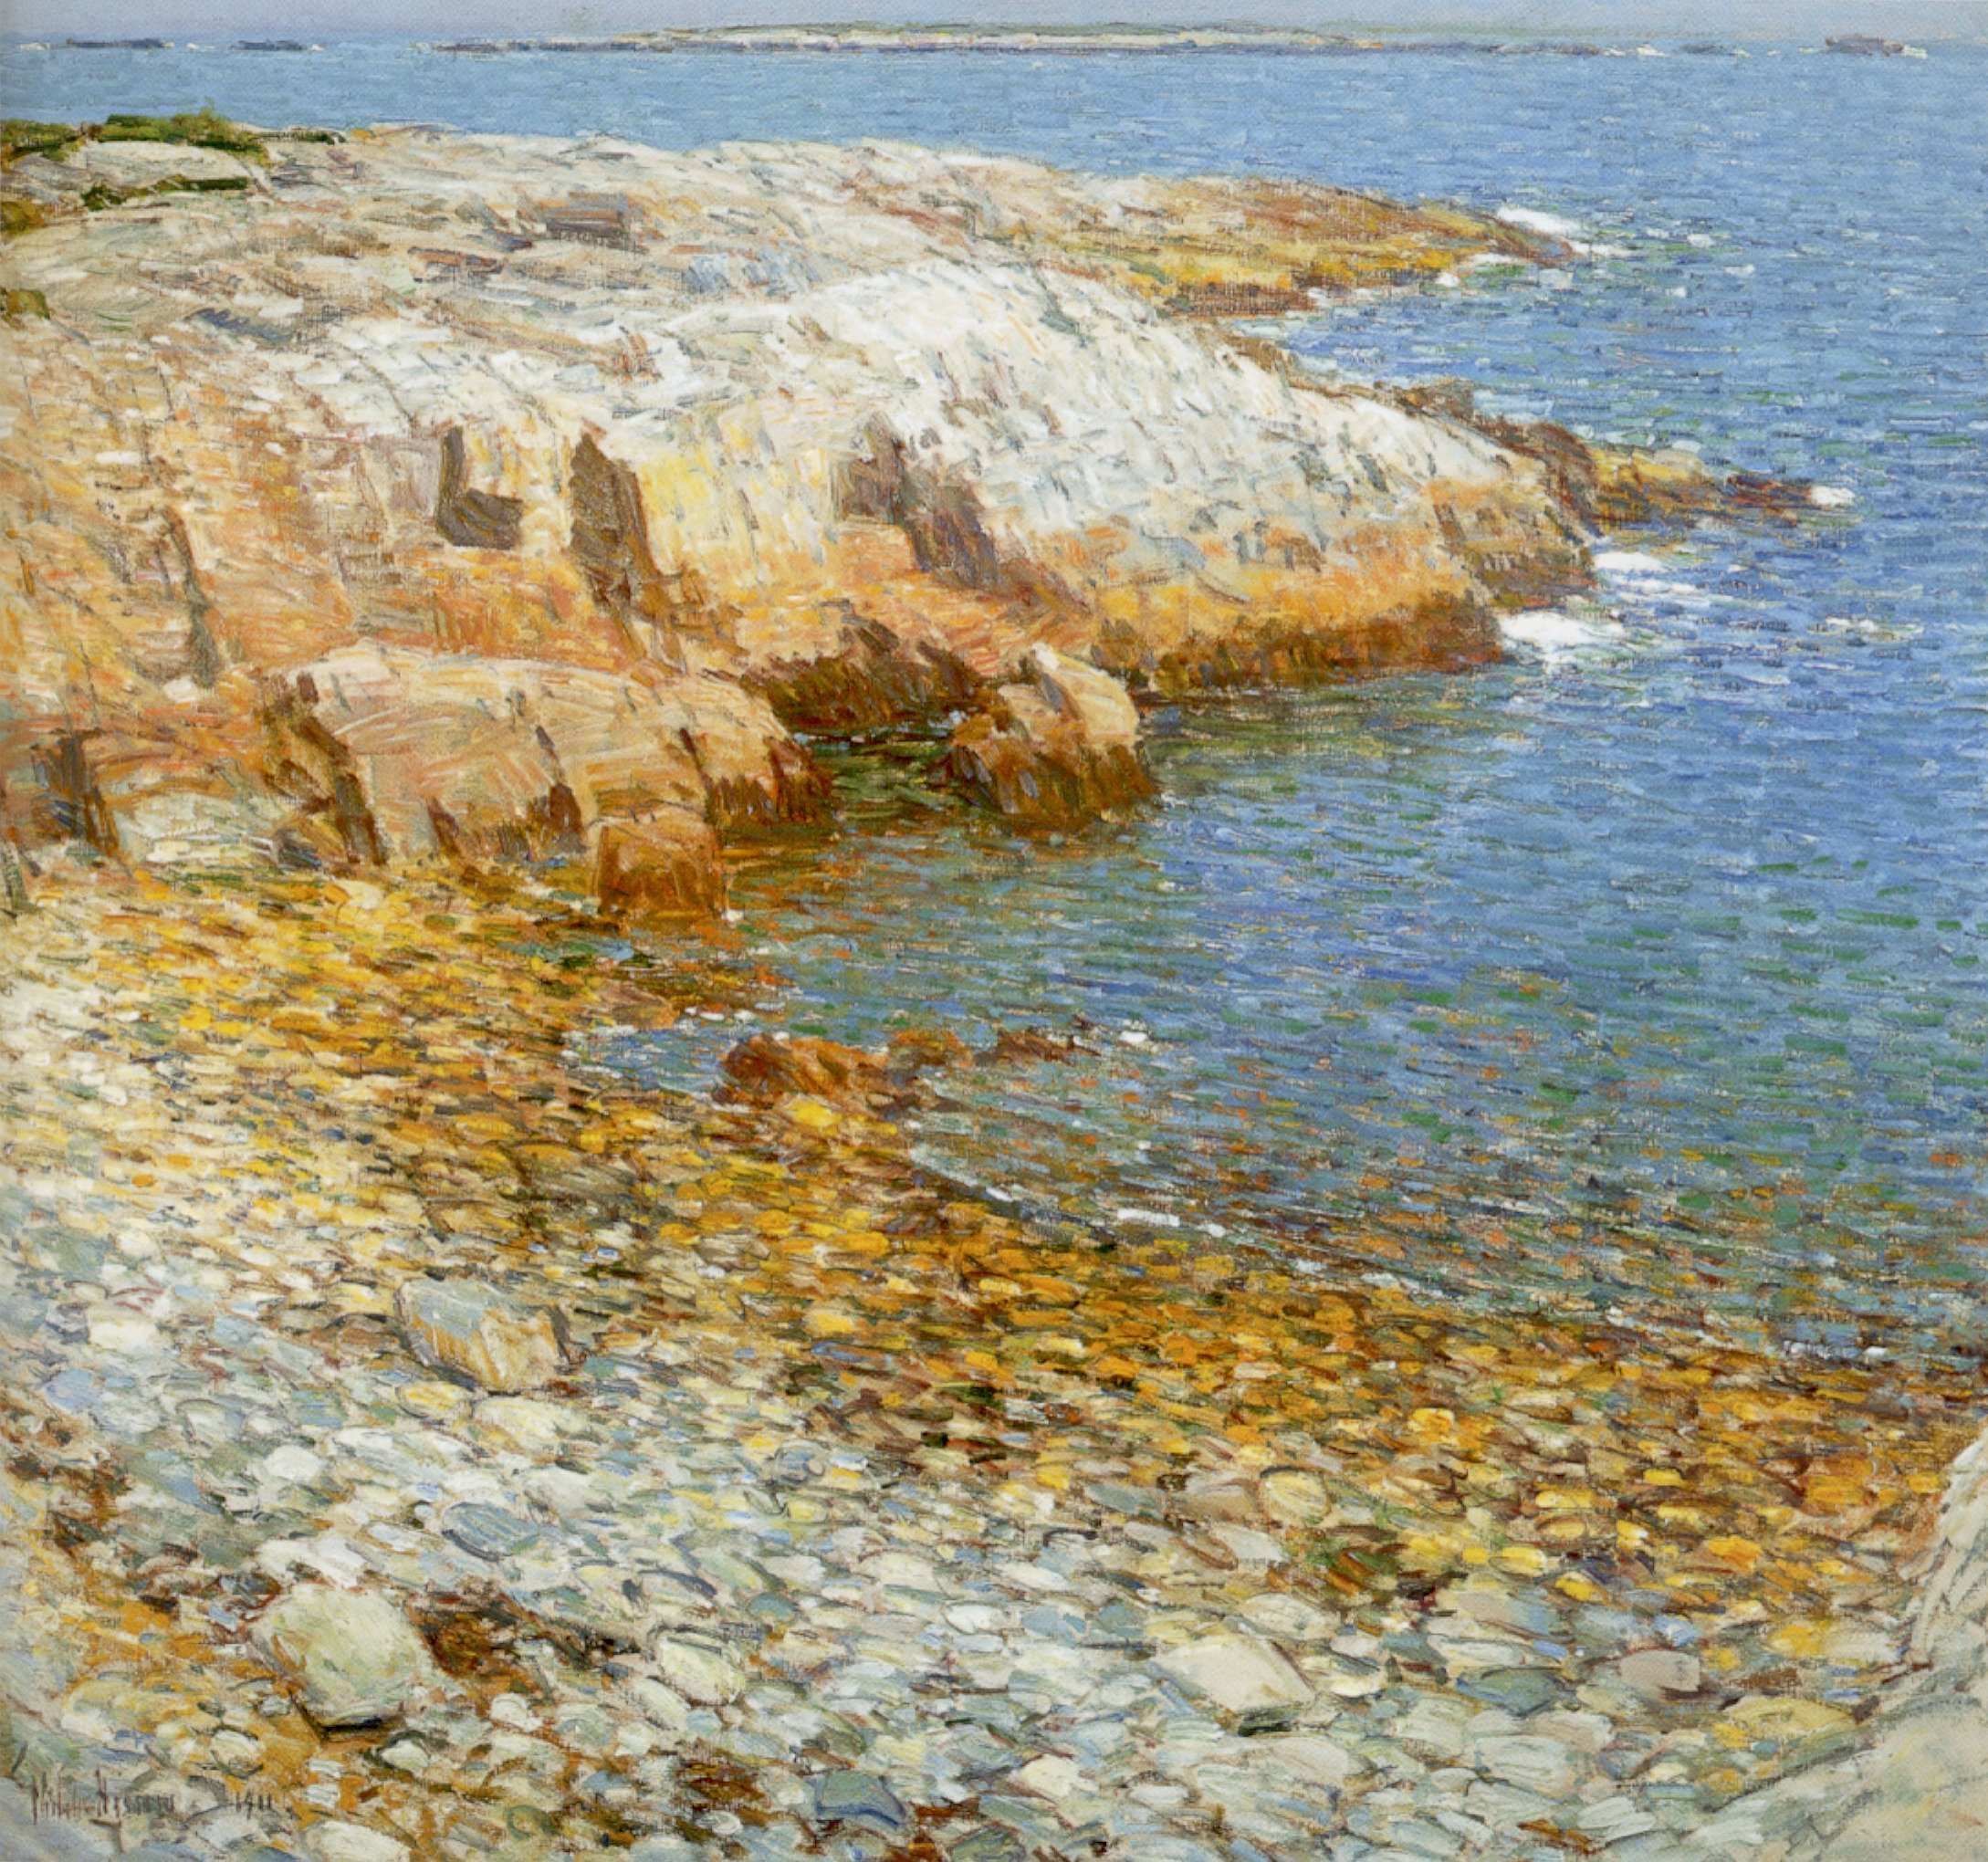 Hassam - 'Isles of Shoals, Broad Cove', oil on canvas painting by Childe Hassam, 1911